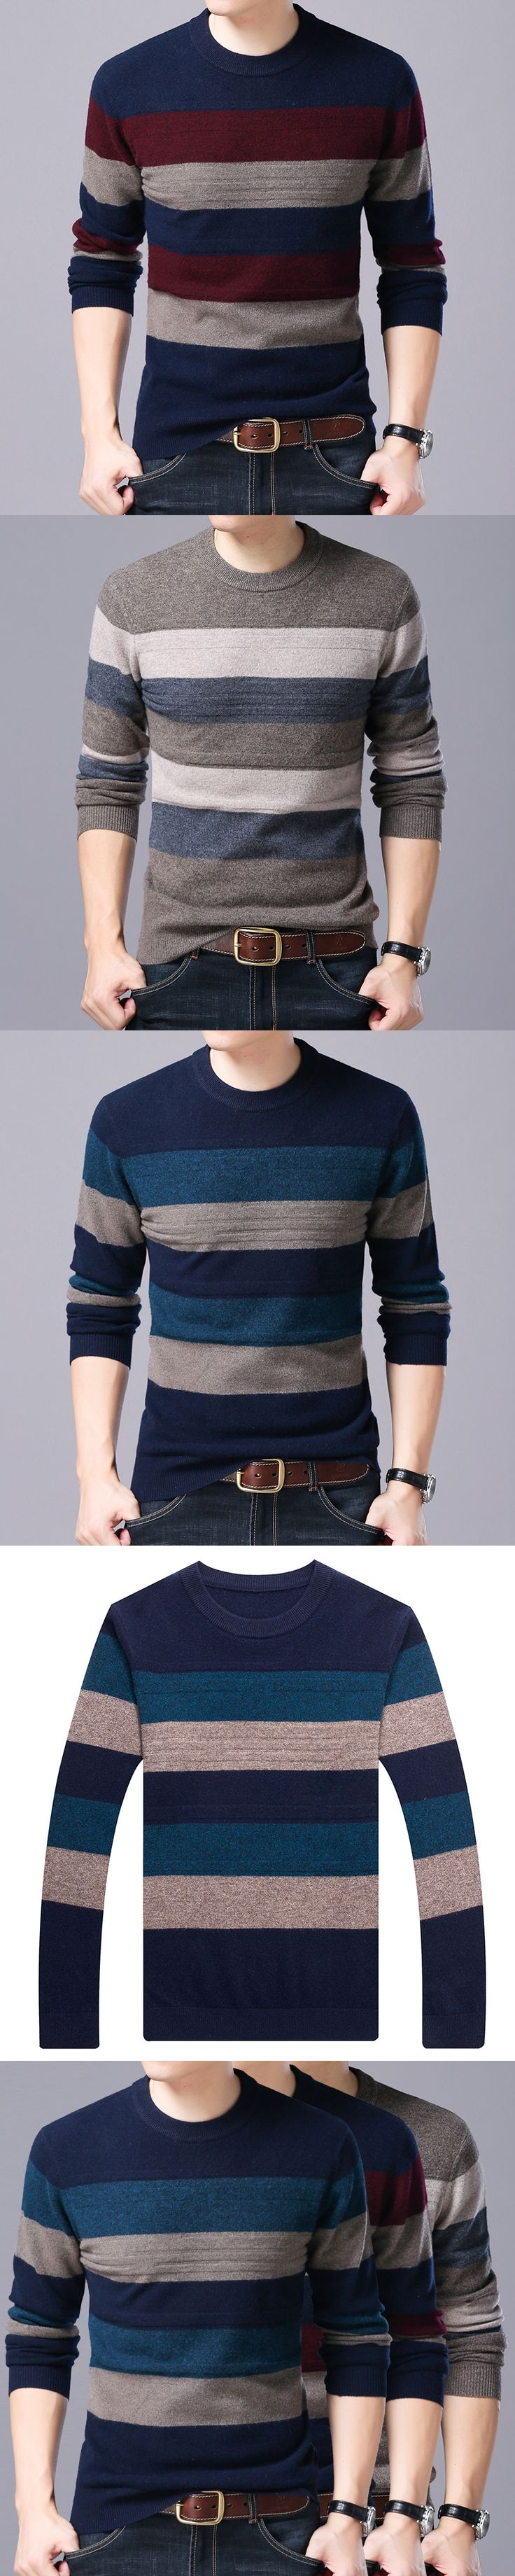 100% Wool Cashmere Sweater Men Winter Christmas Thick Warm Cashmere Sweaters Fashion Gradient Color Print O-Neck Pullover Men